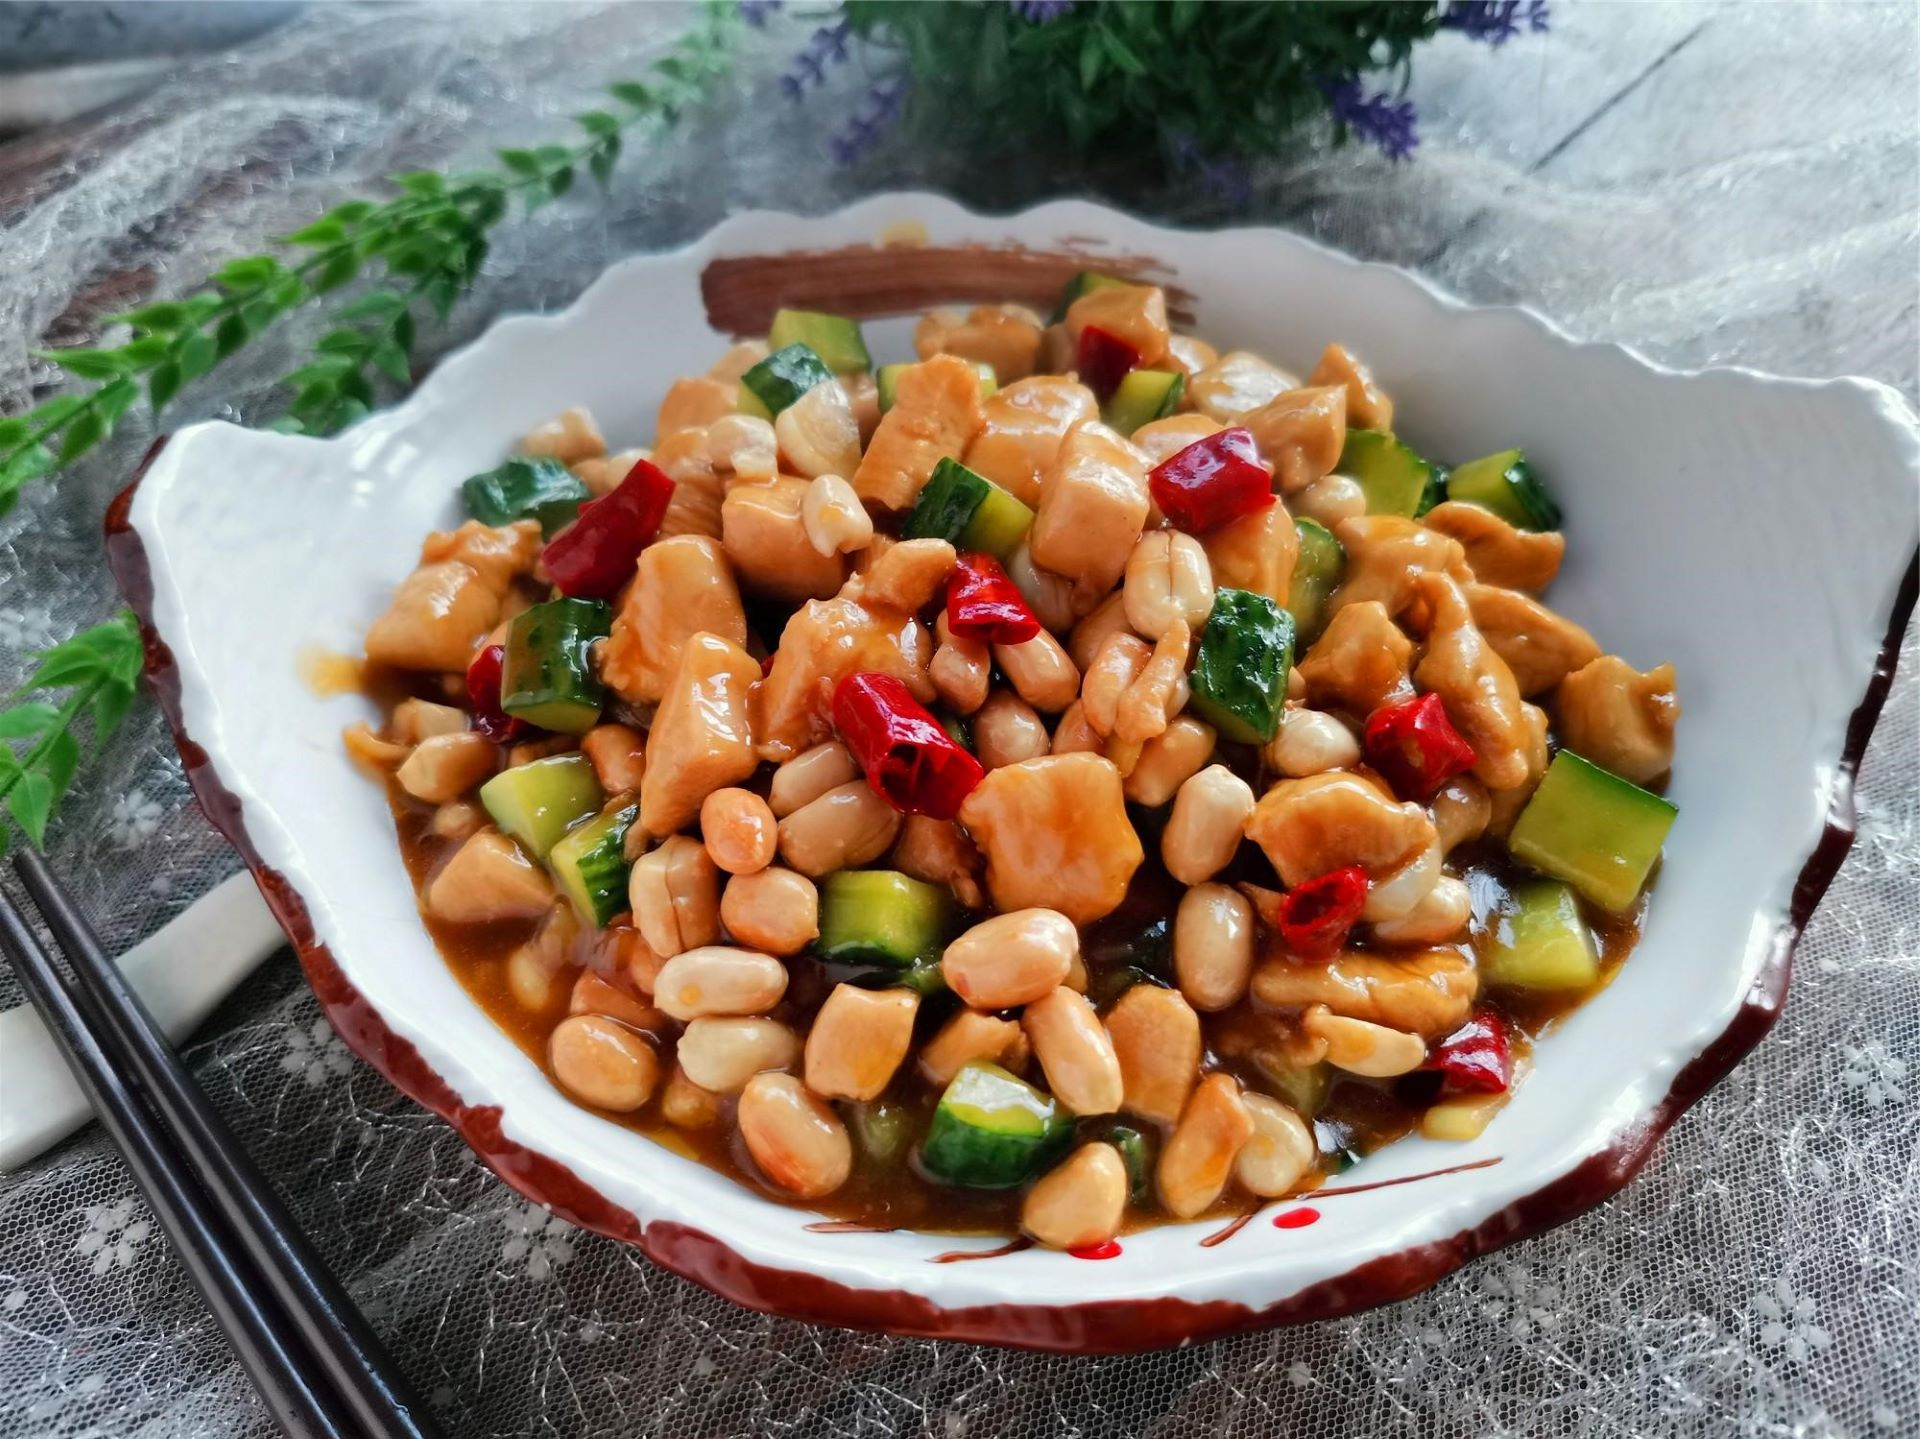 Kung pao chicken recipe healthy spicy diced chicken China food Chinese homemade dish recipe